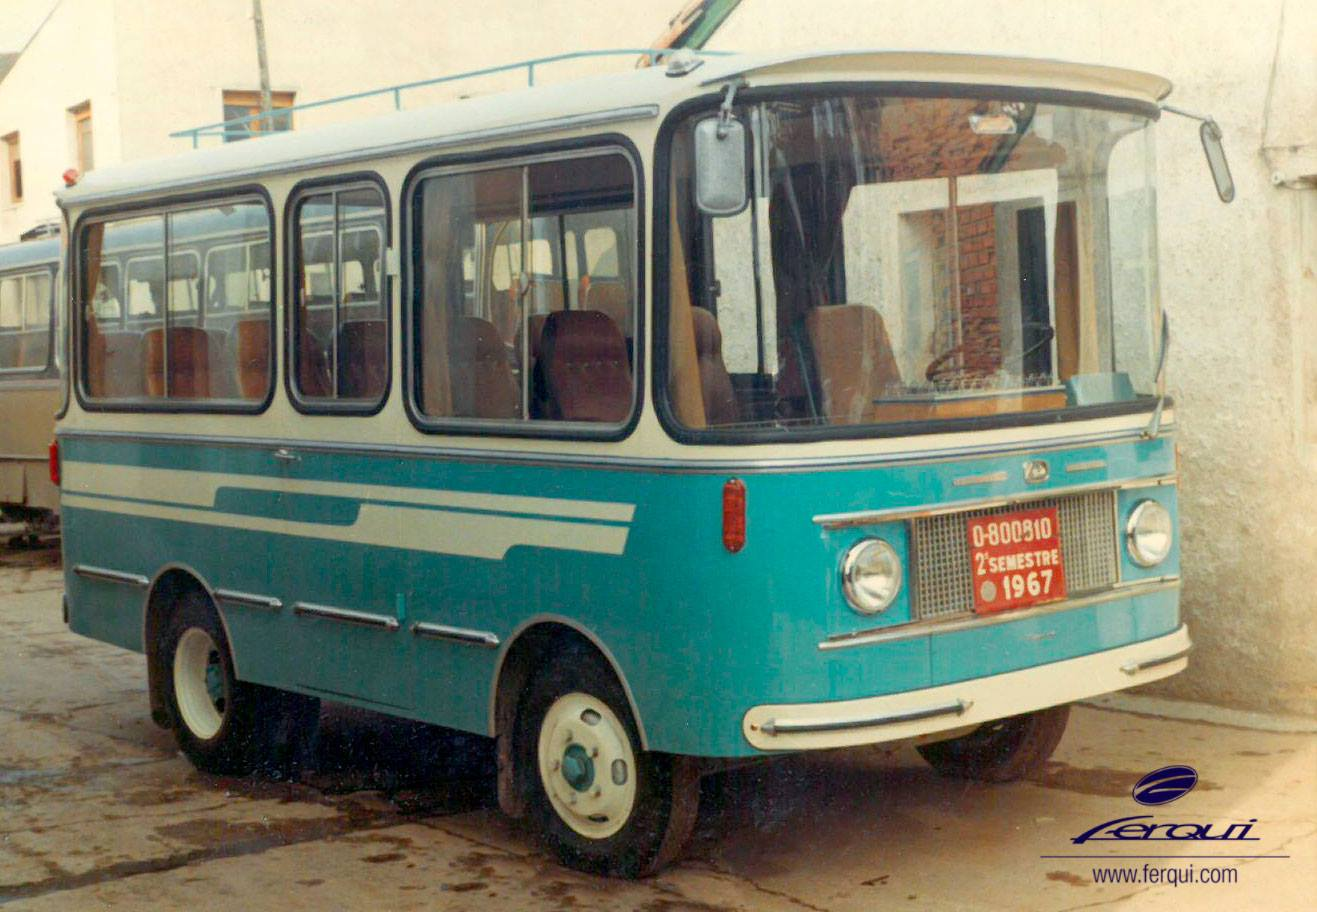 1967-micro-bus-13-C-op-chassis-Avia-1